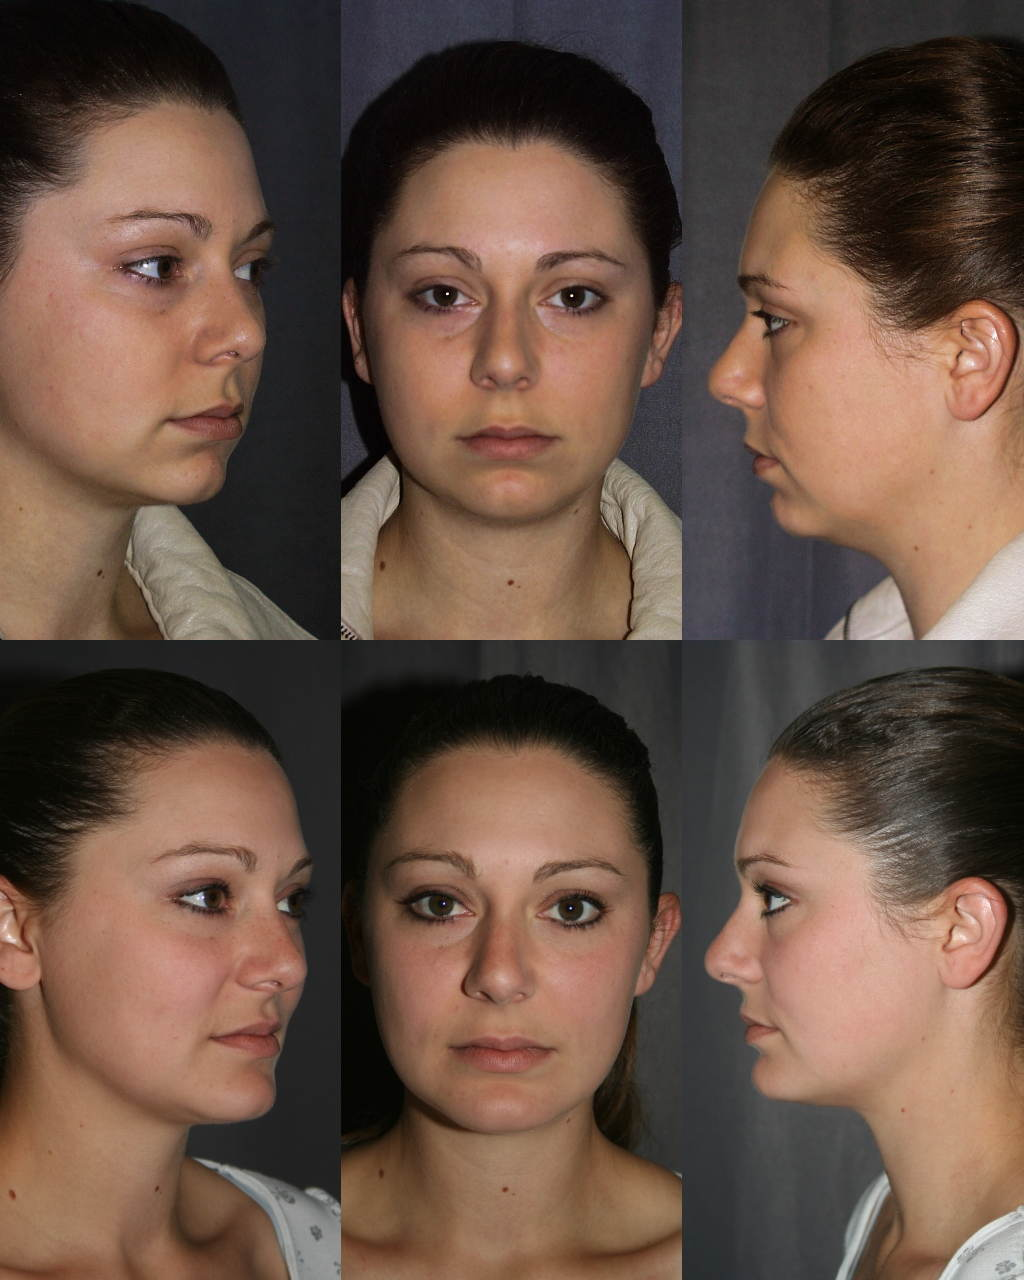 Chin Augmentation with Chin Implant. Before (Top Row) & After (Bottom Row)